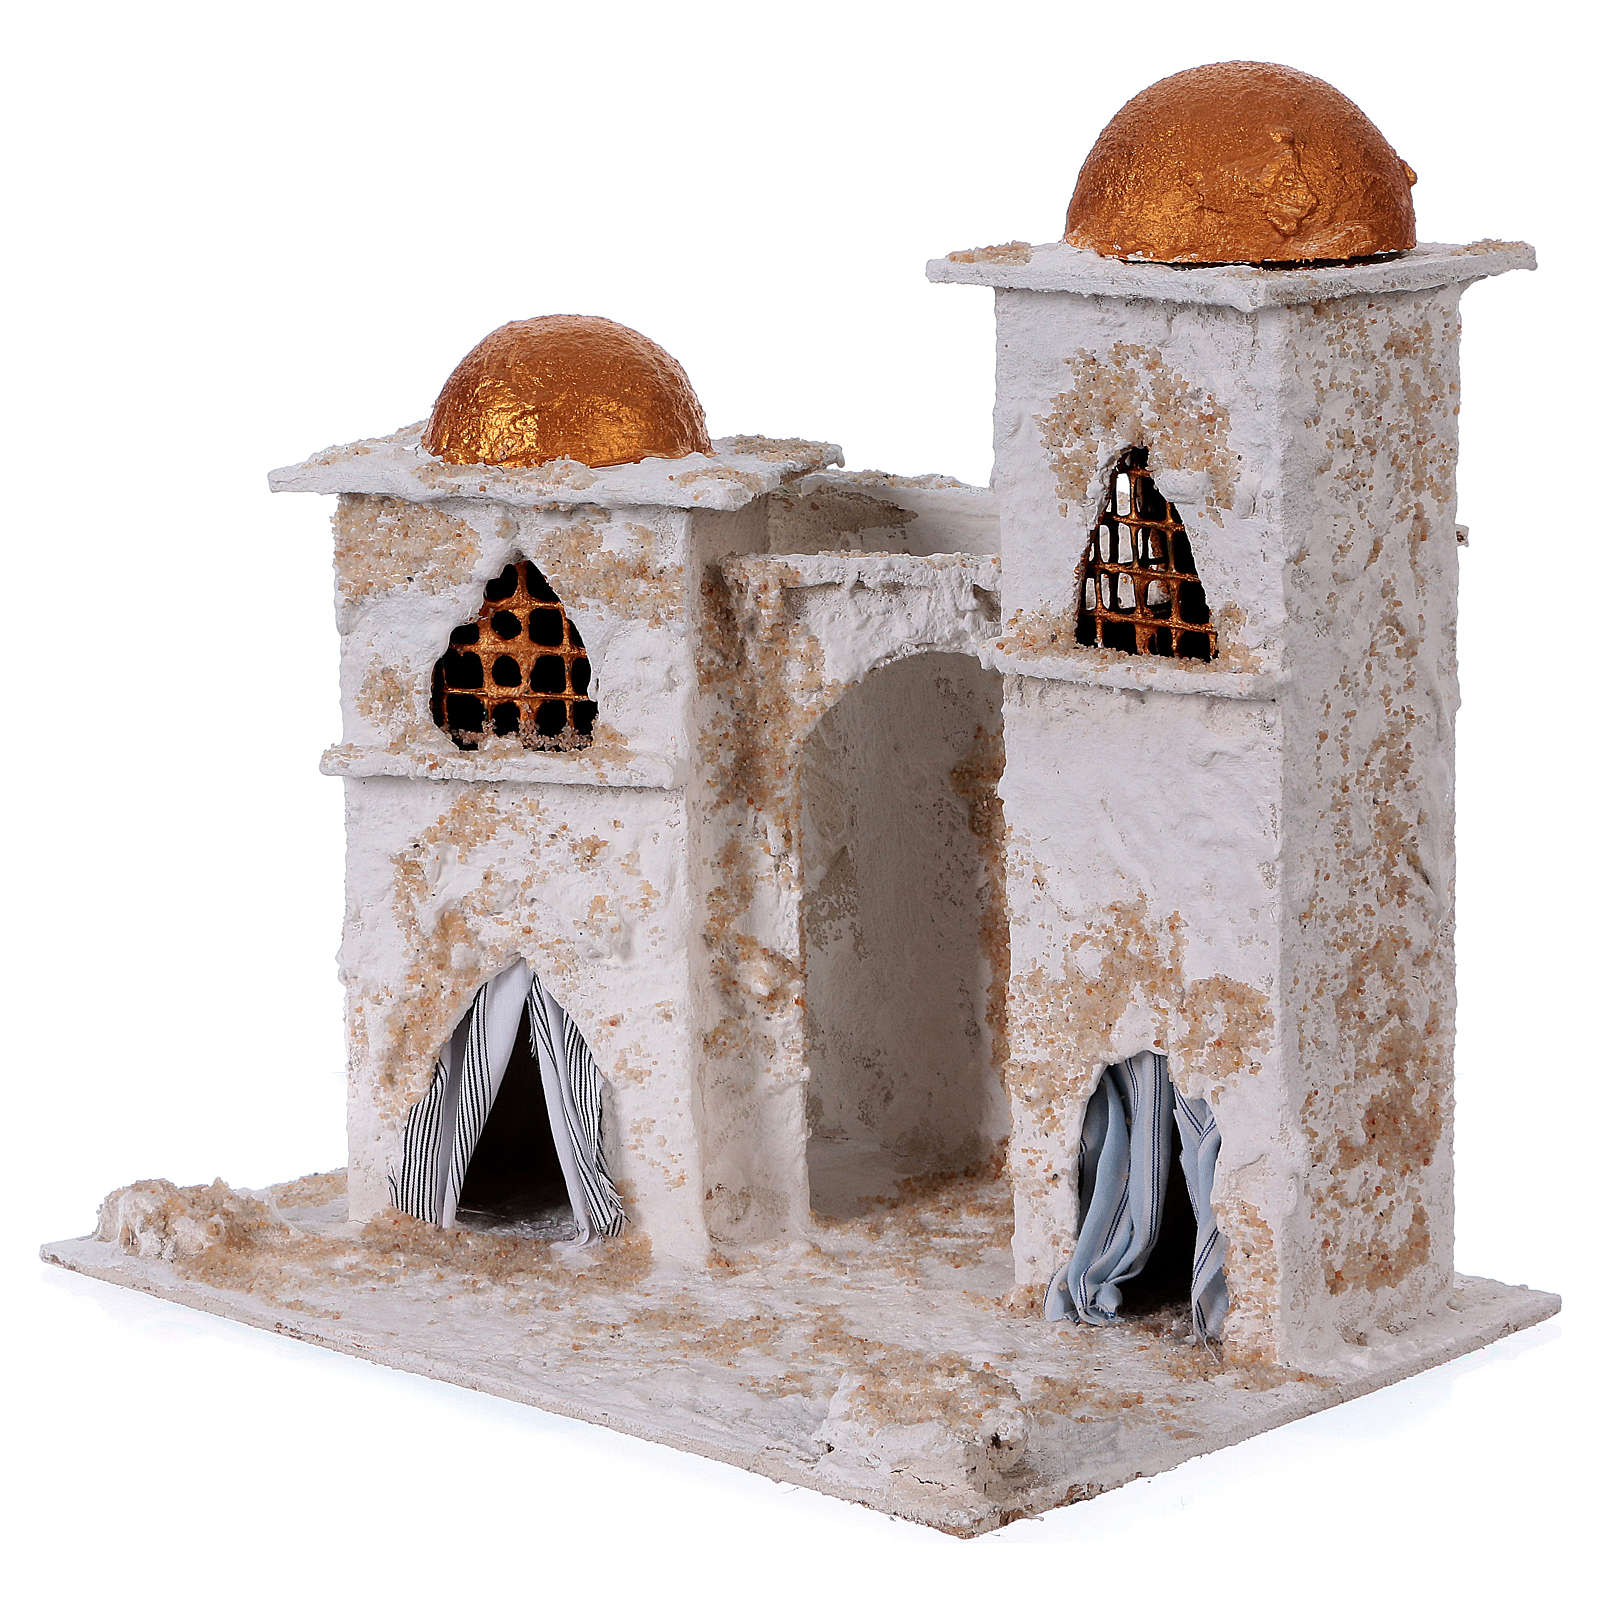 Arab house with domed painted in gold for Nativity scene 30x30x20 cm 4